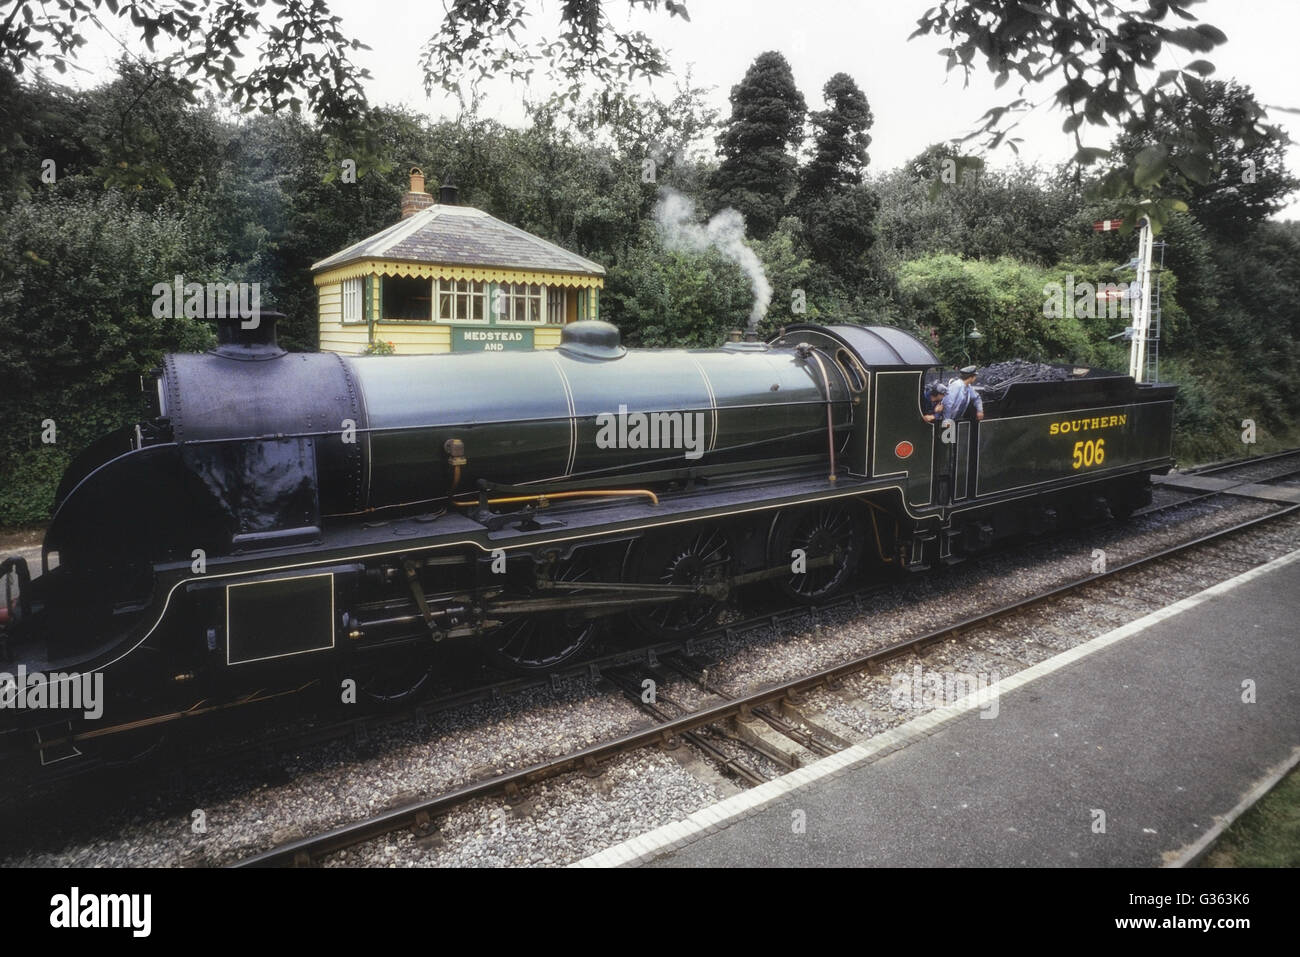 Urie S15 No. 506 at Medstead & Four Marks station. Mid-Hants Railway Watercress steam line. Hampshire. England. - Stock Image